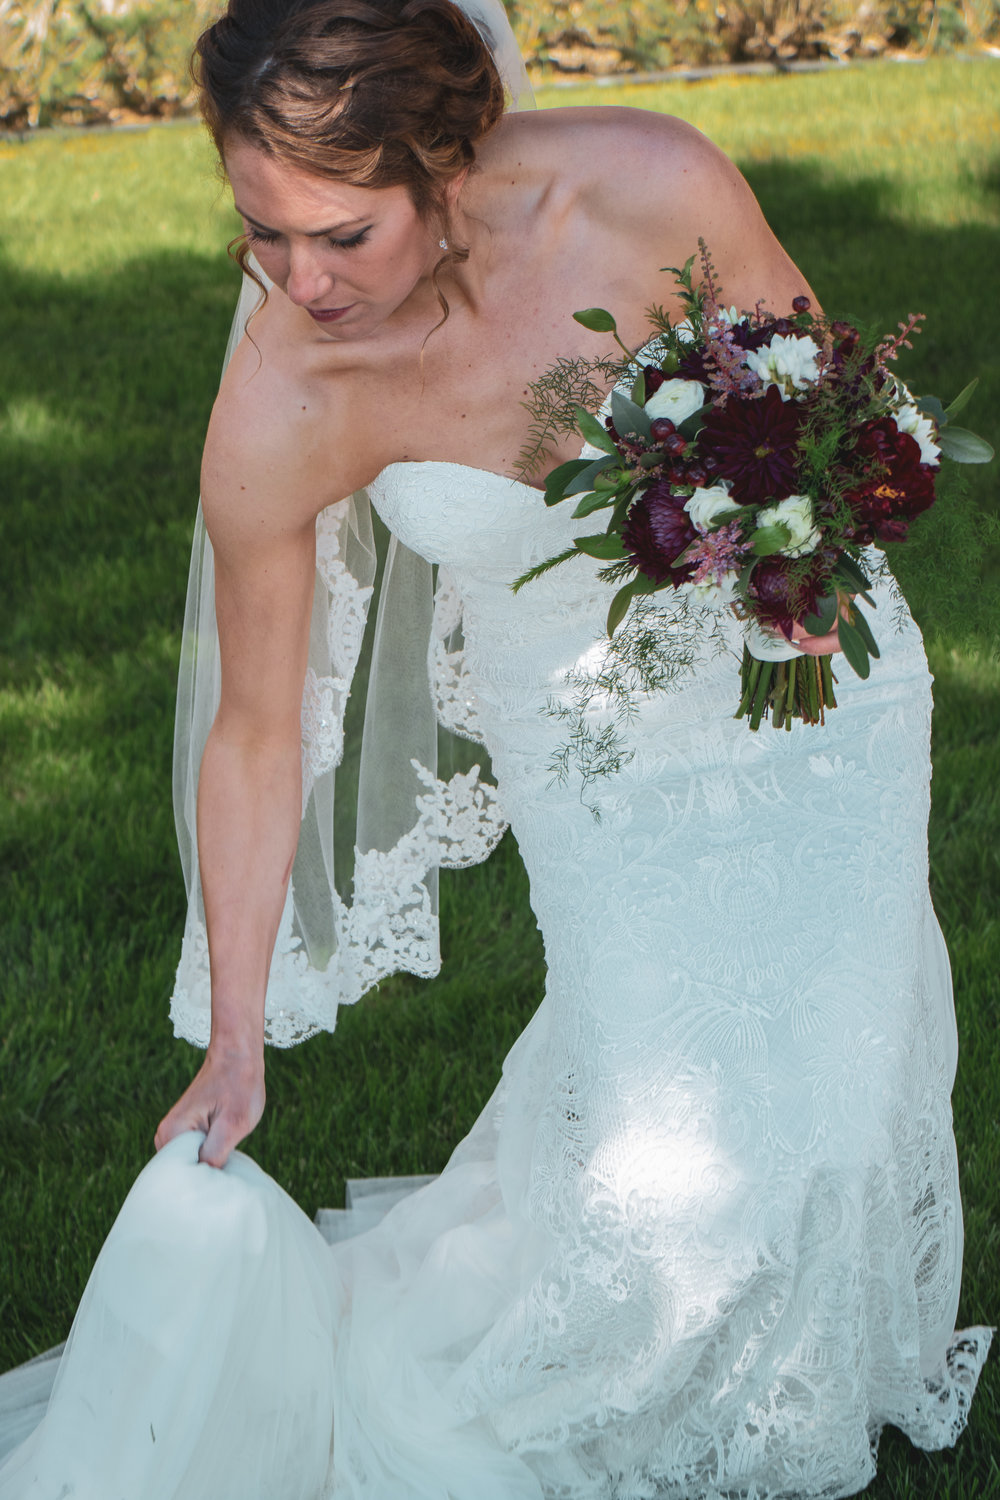 The bride photographed with flowers before her wedding in Lewistown, Montana.